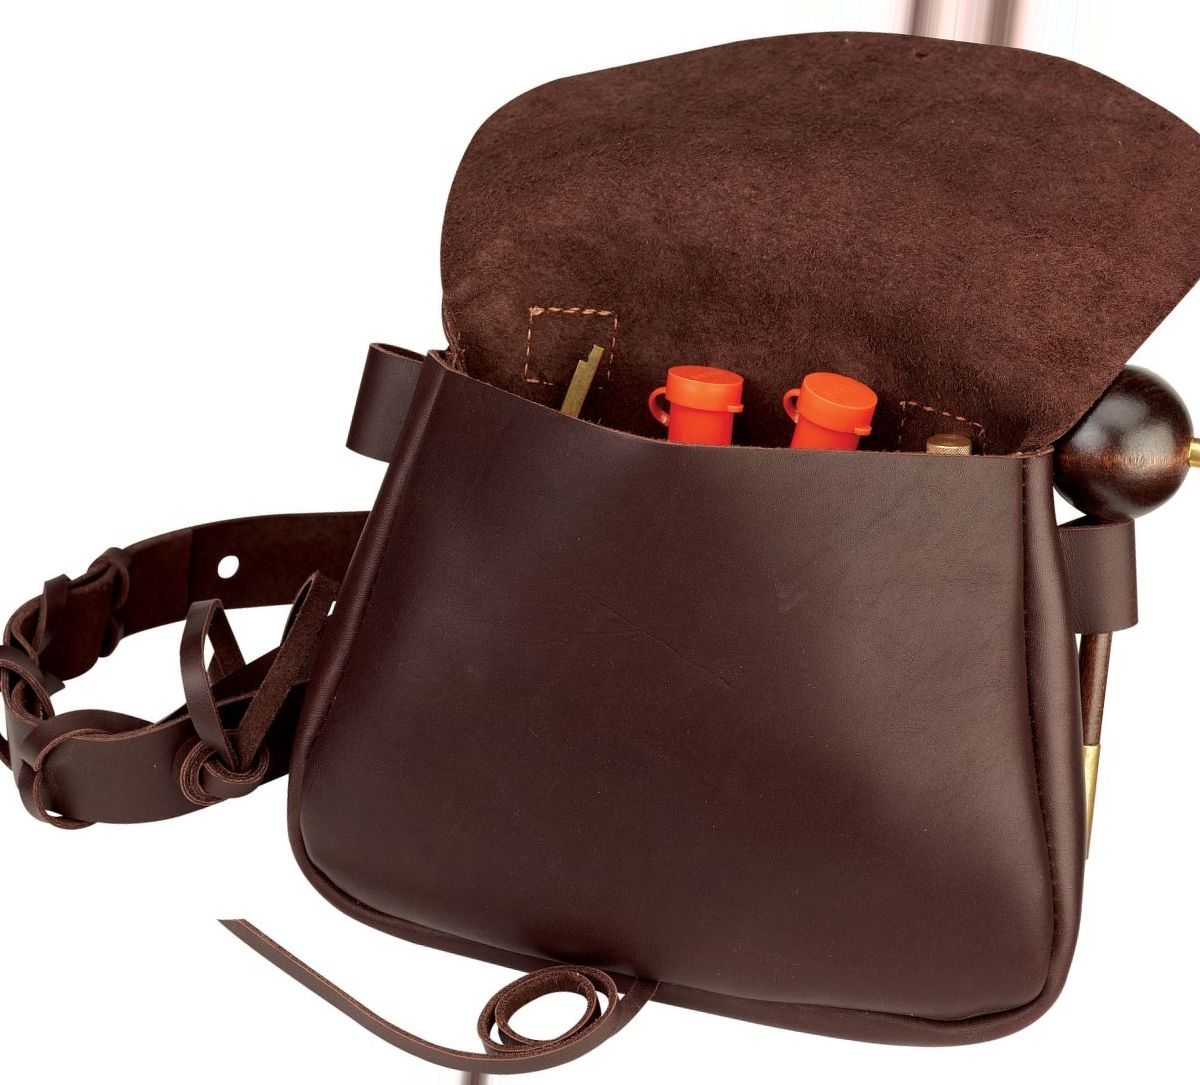 Full-Grain Leather Possibles Bag